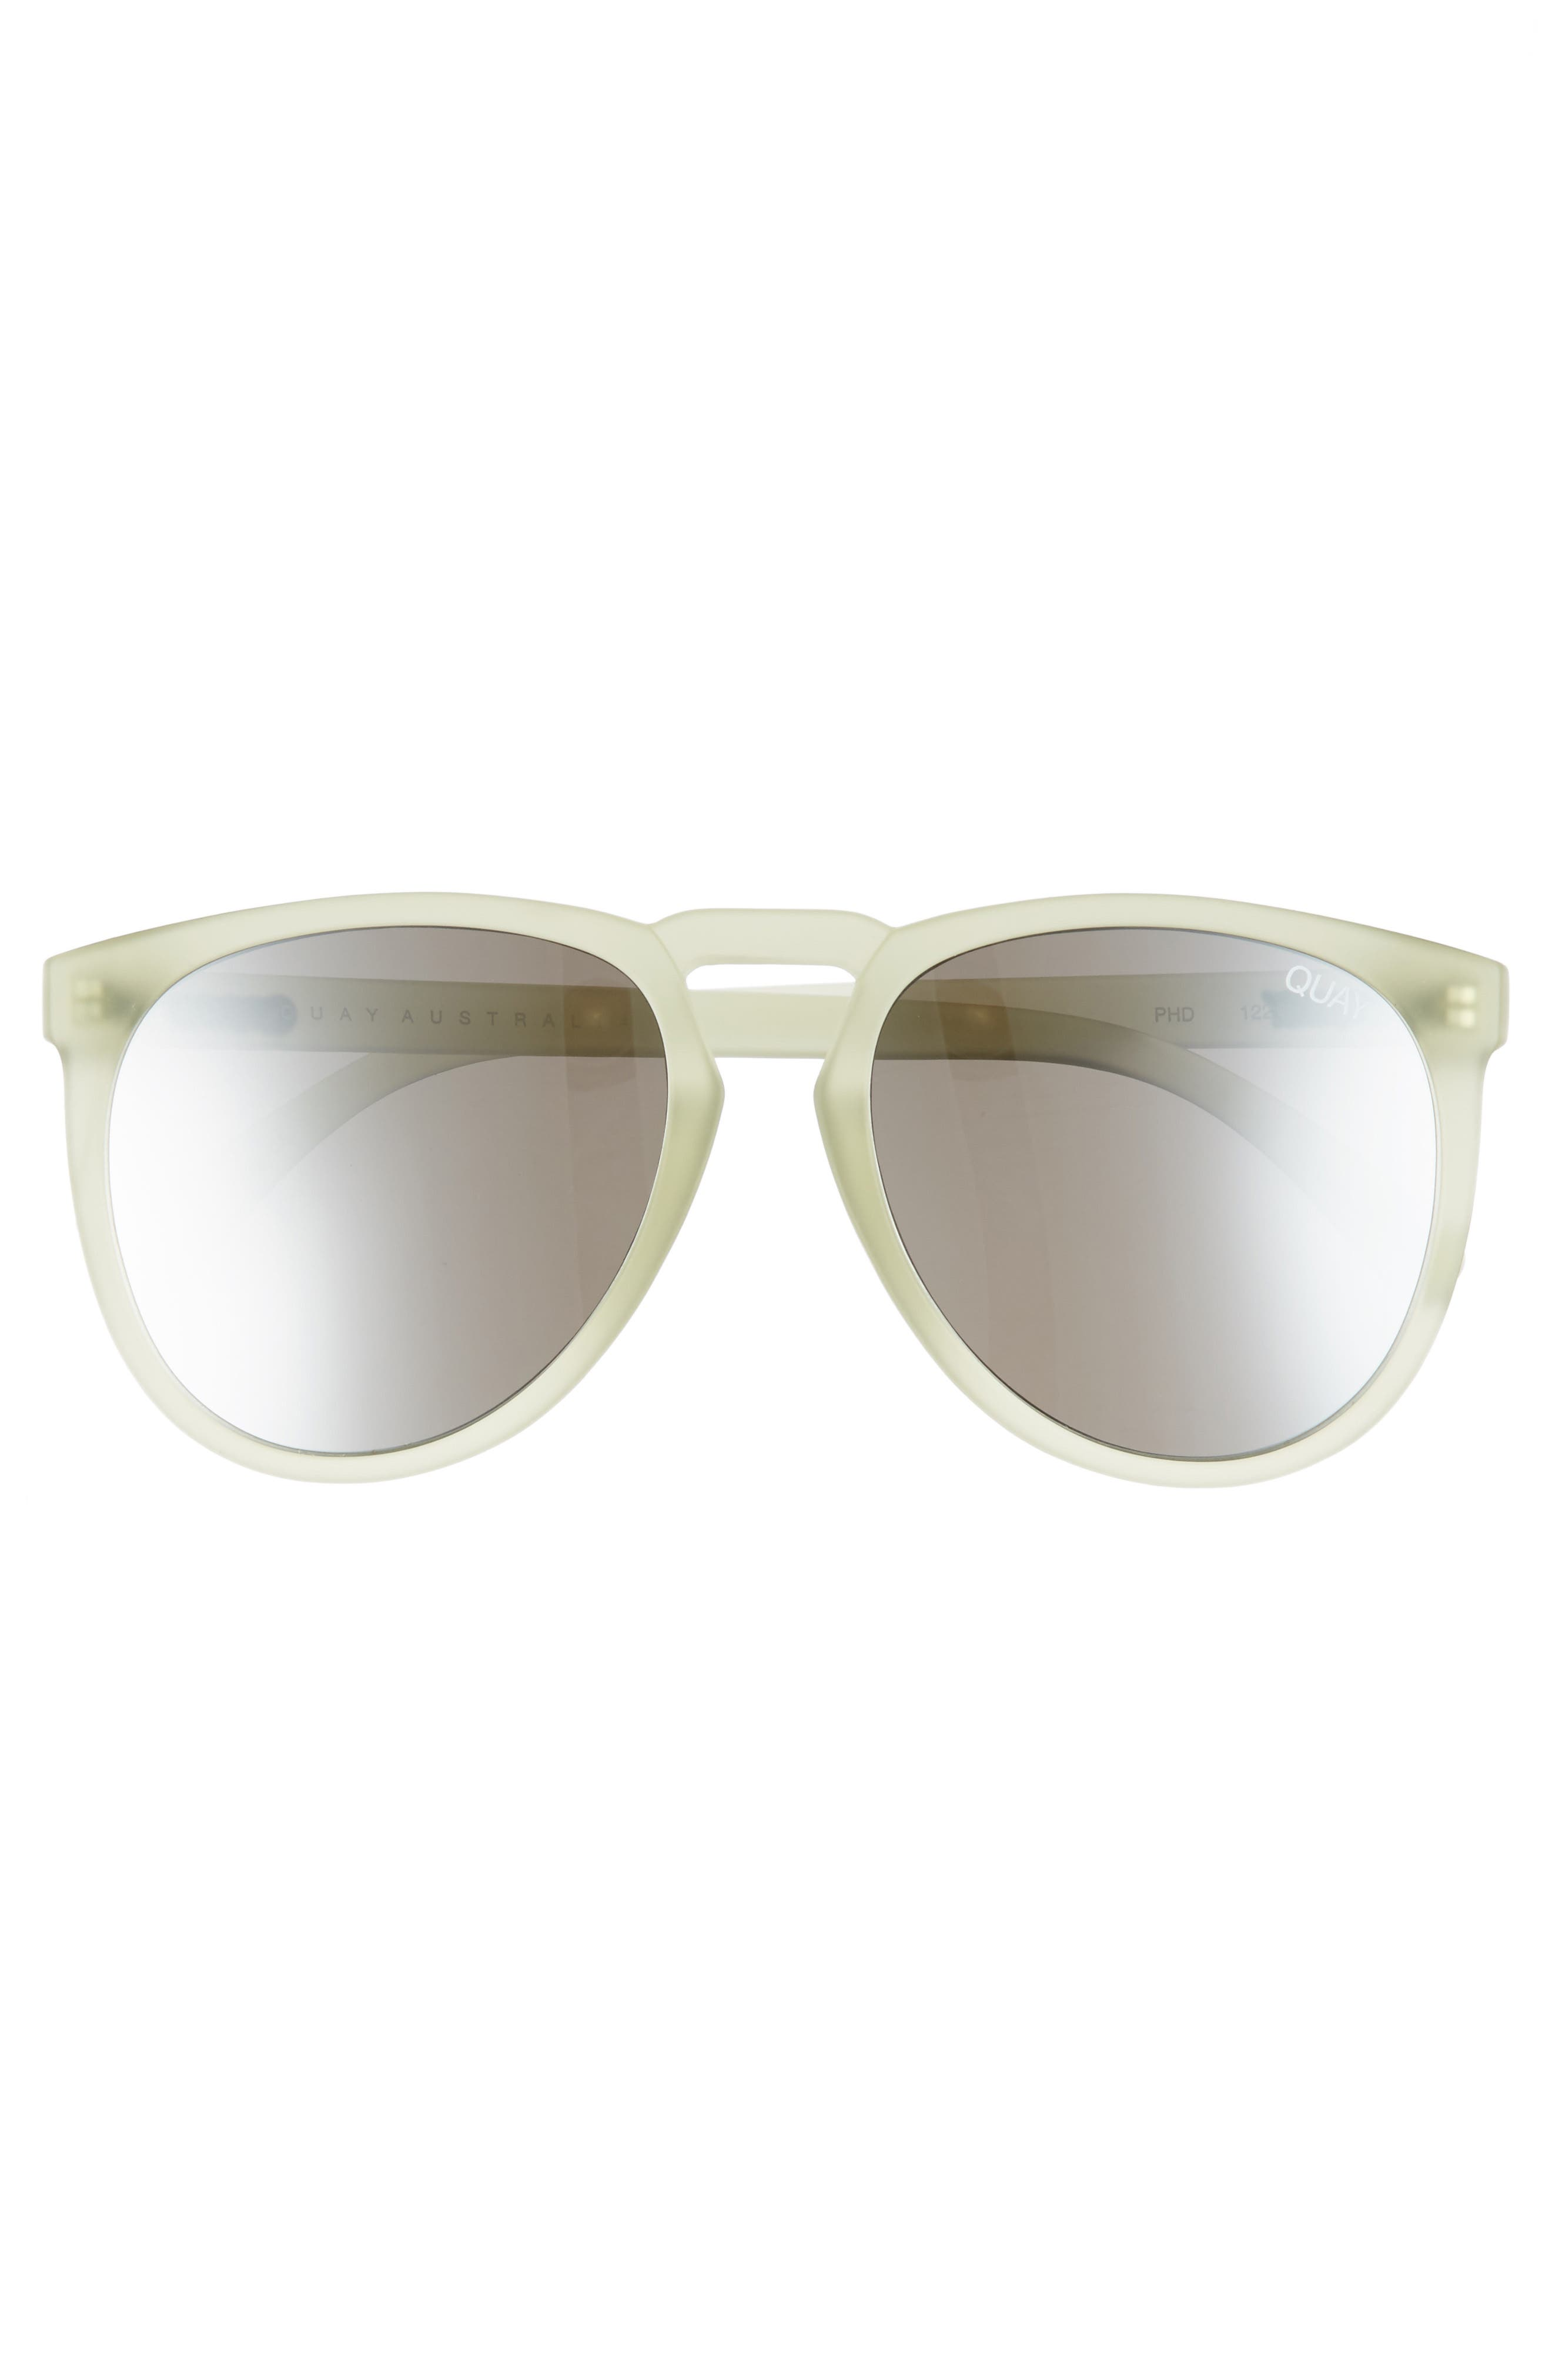 PhD 65mm Sunglasses,                             Alternate thumbnail 2, color,                             OLIVE/ SILVER